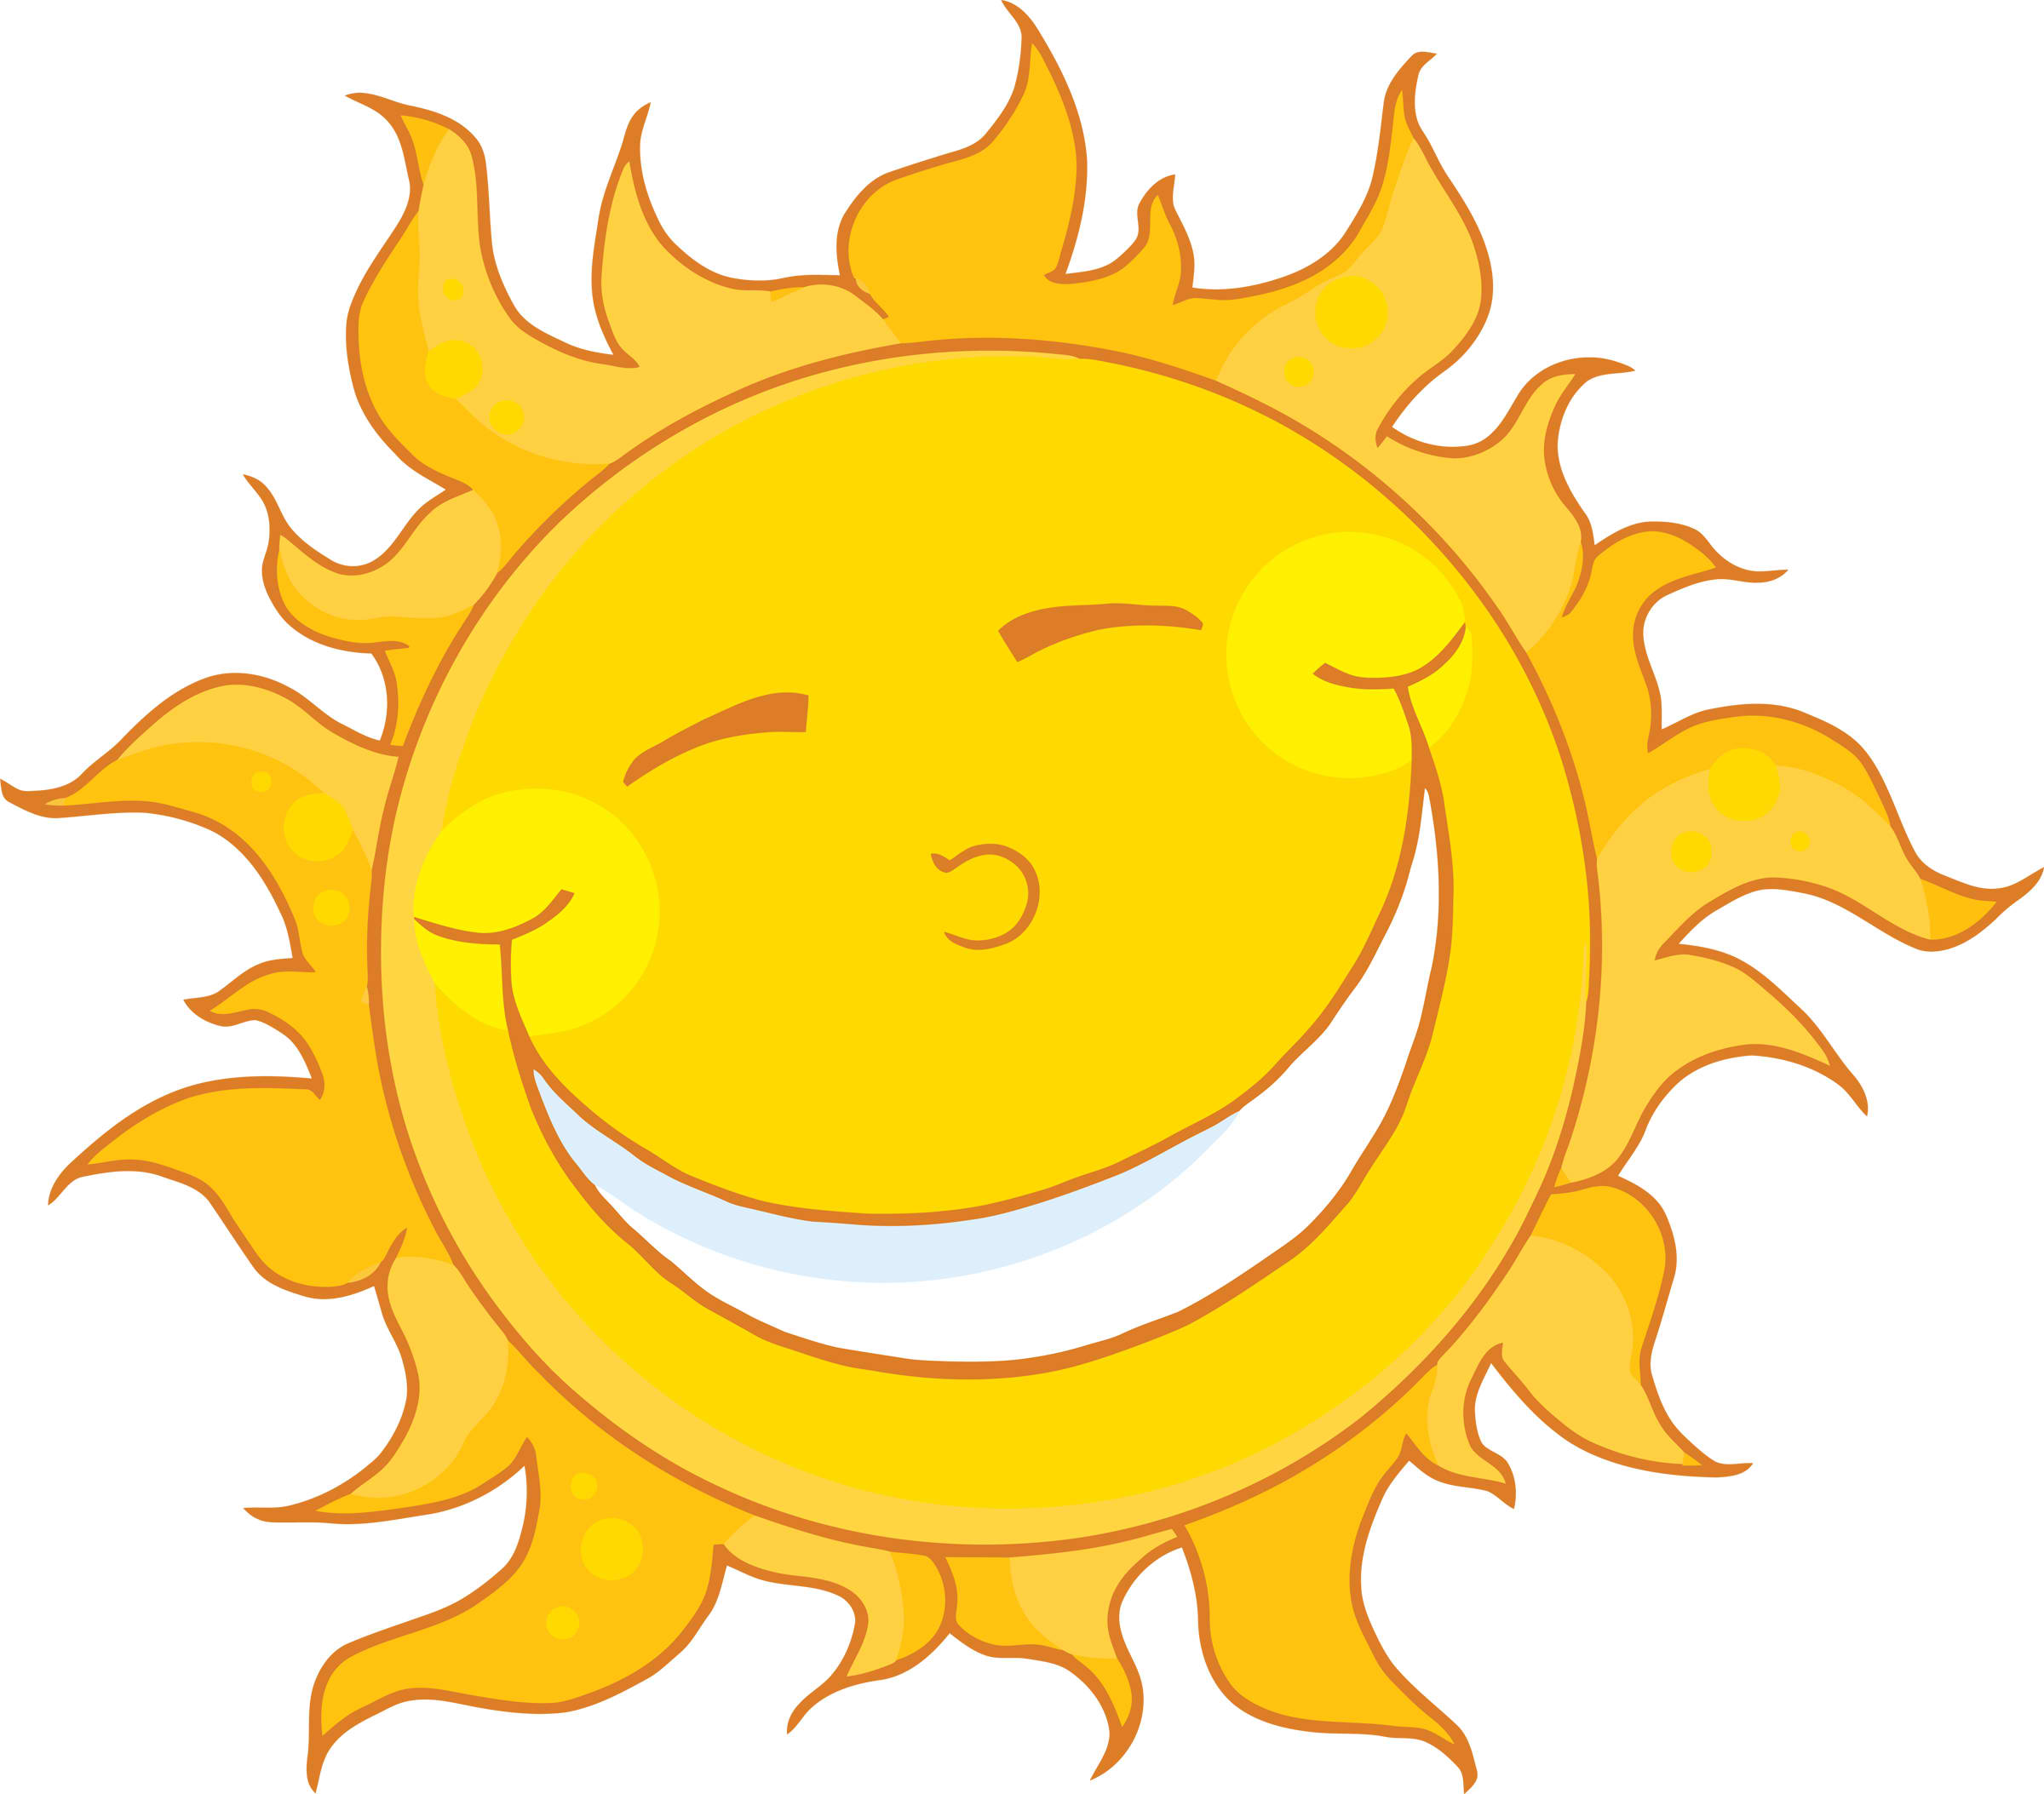 Cartoon Happy Face Sun Clip Art free image.